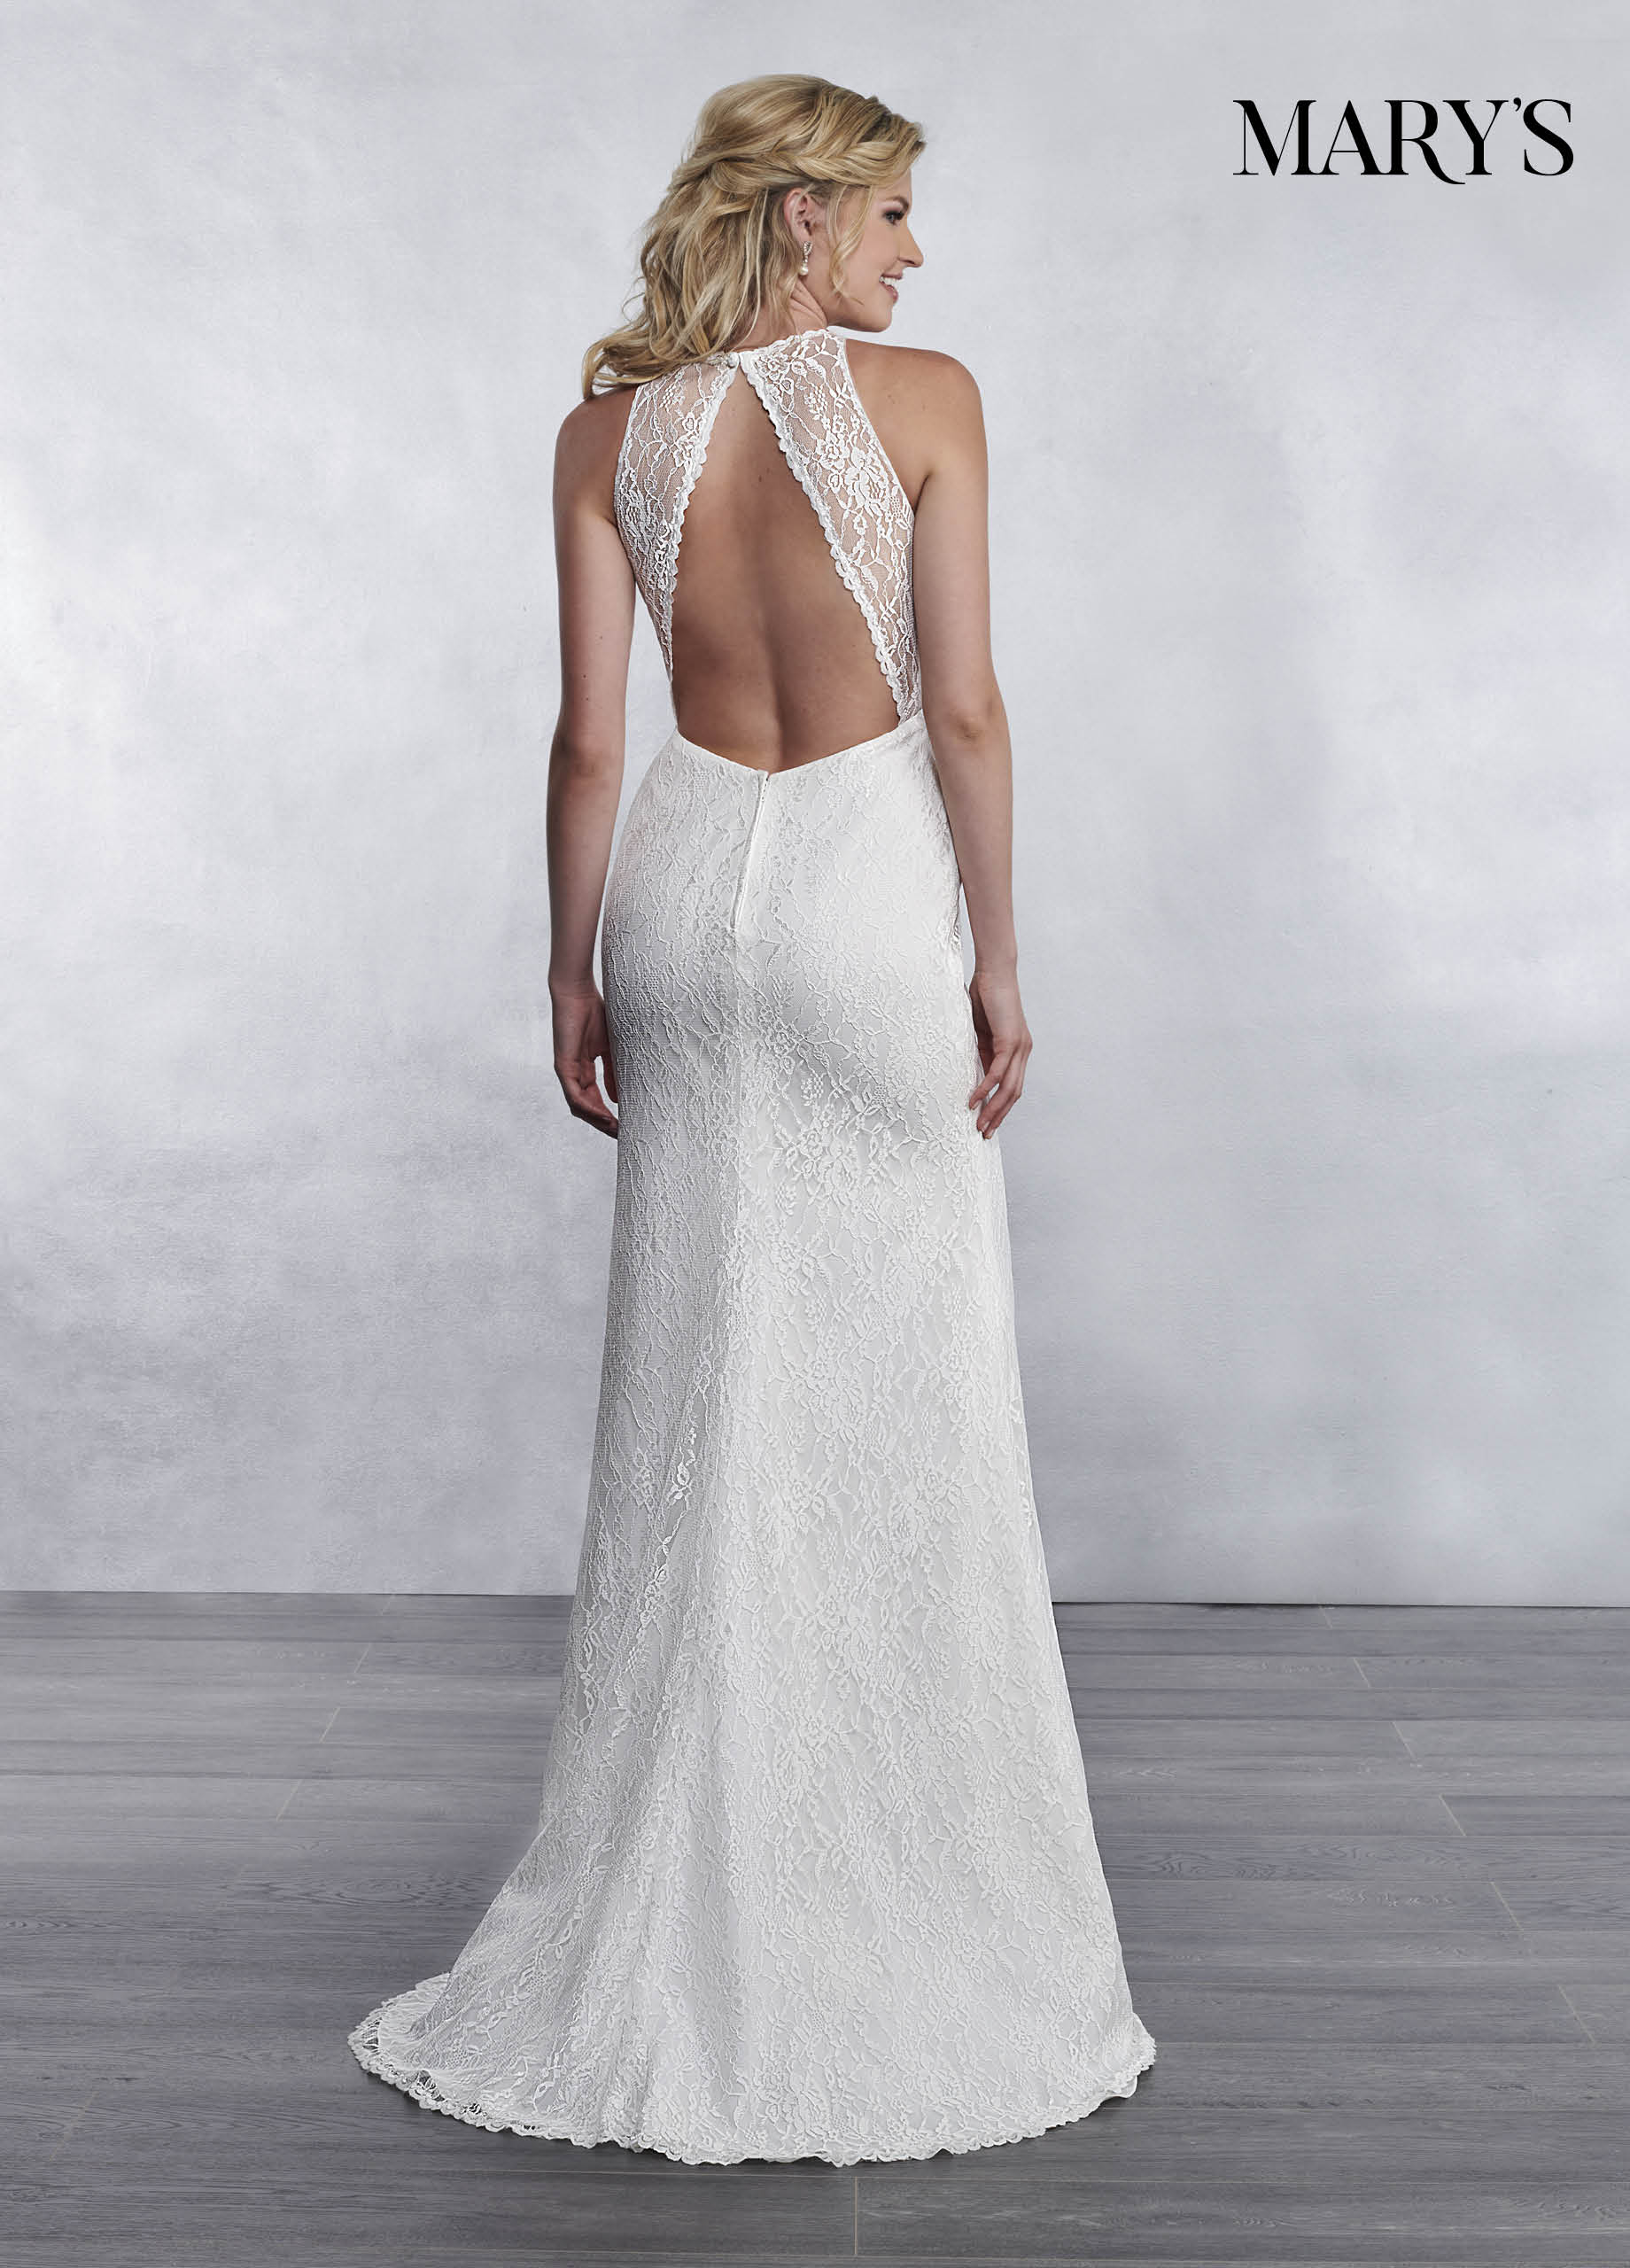 Bridal Wedding Dresses | Mary's | Style - MB1035